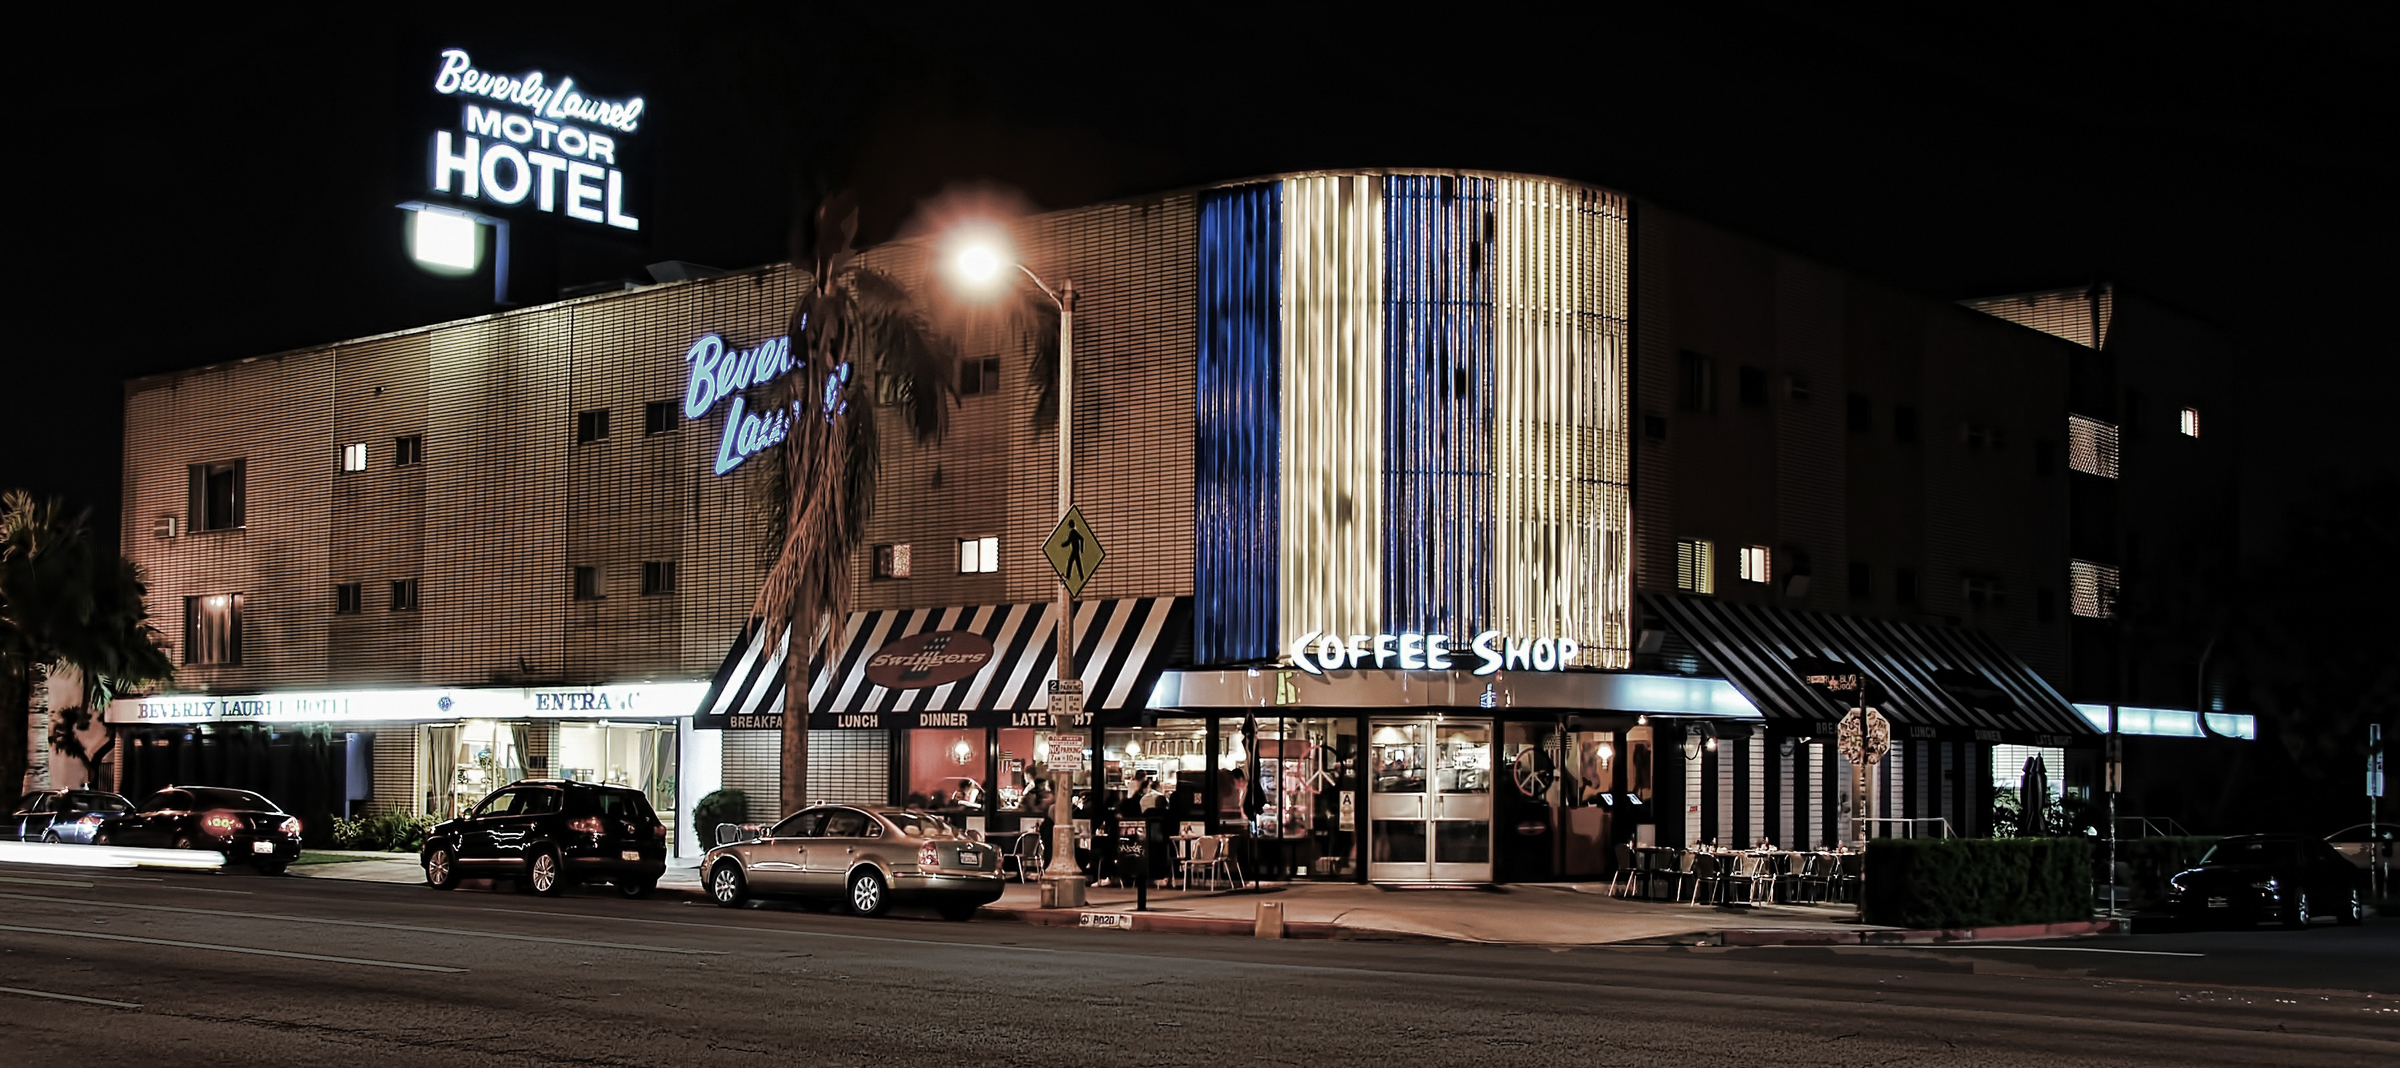 Finally, some good news: Swingers diner gets saved and will reopen soon